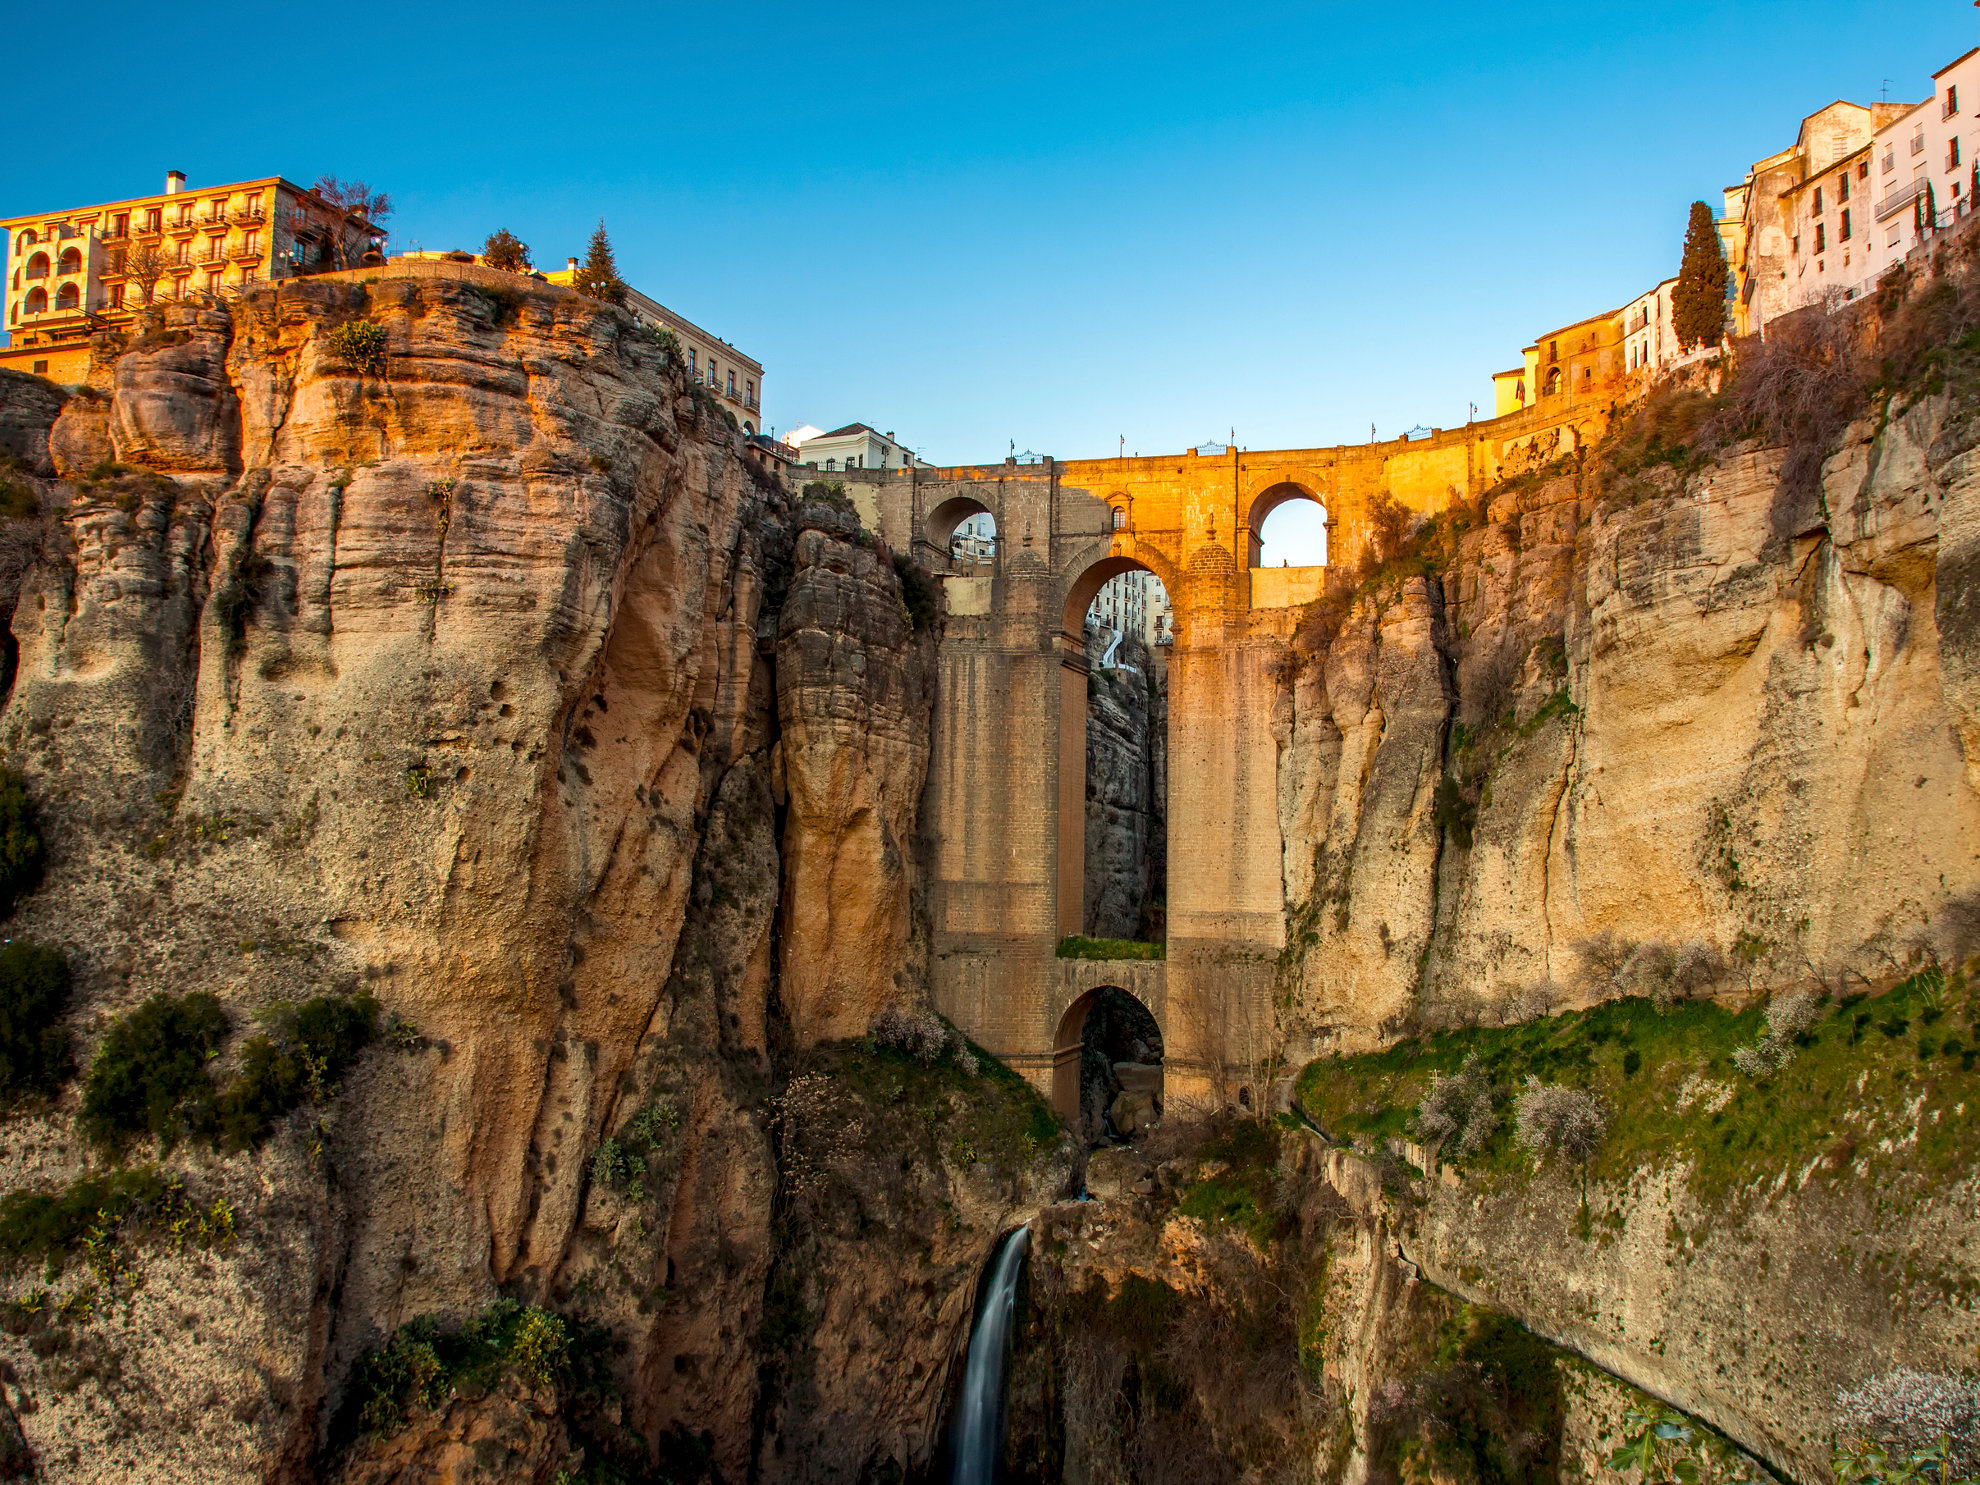 Cliffside Village of Ronda Spain